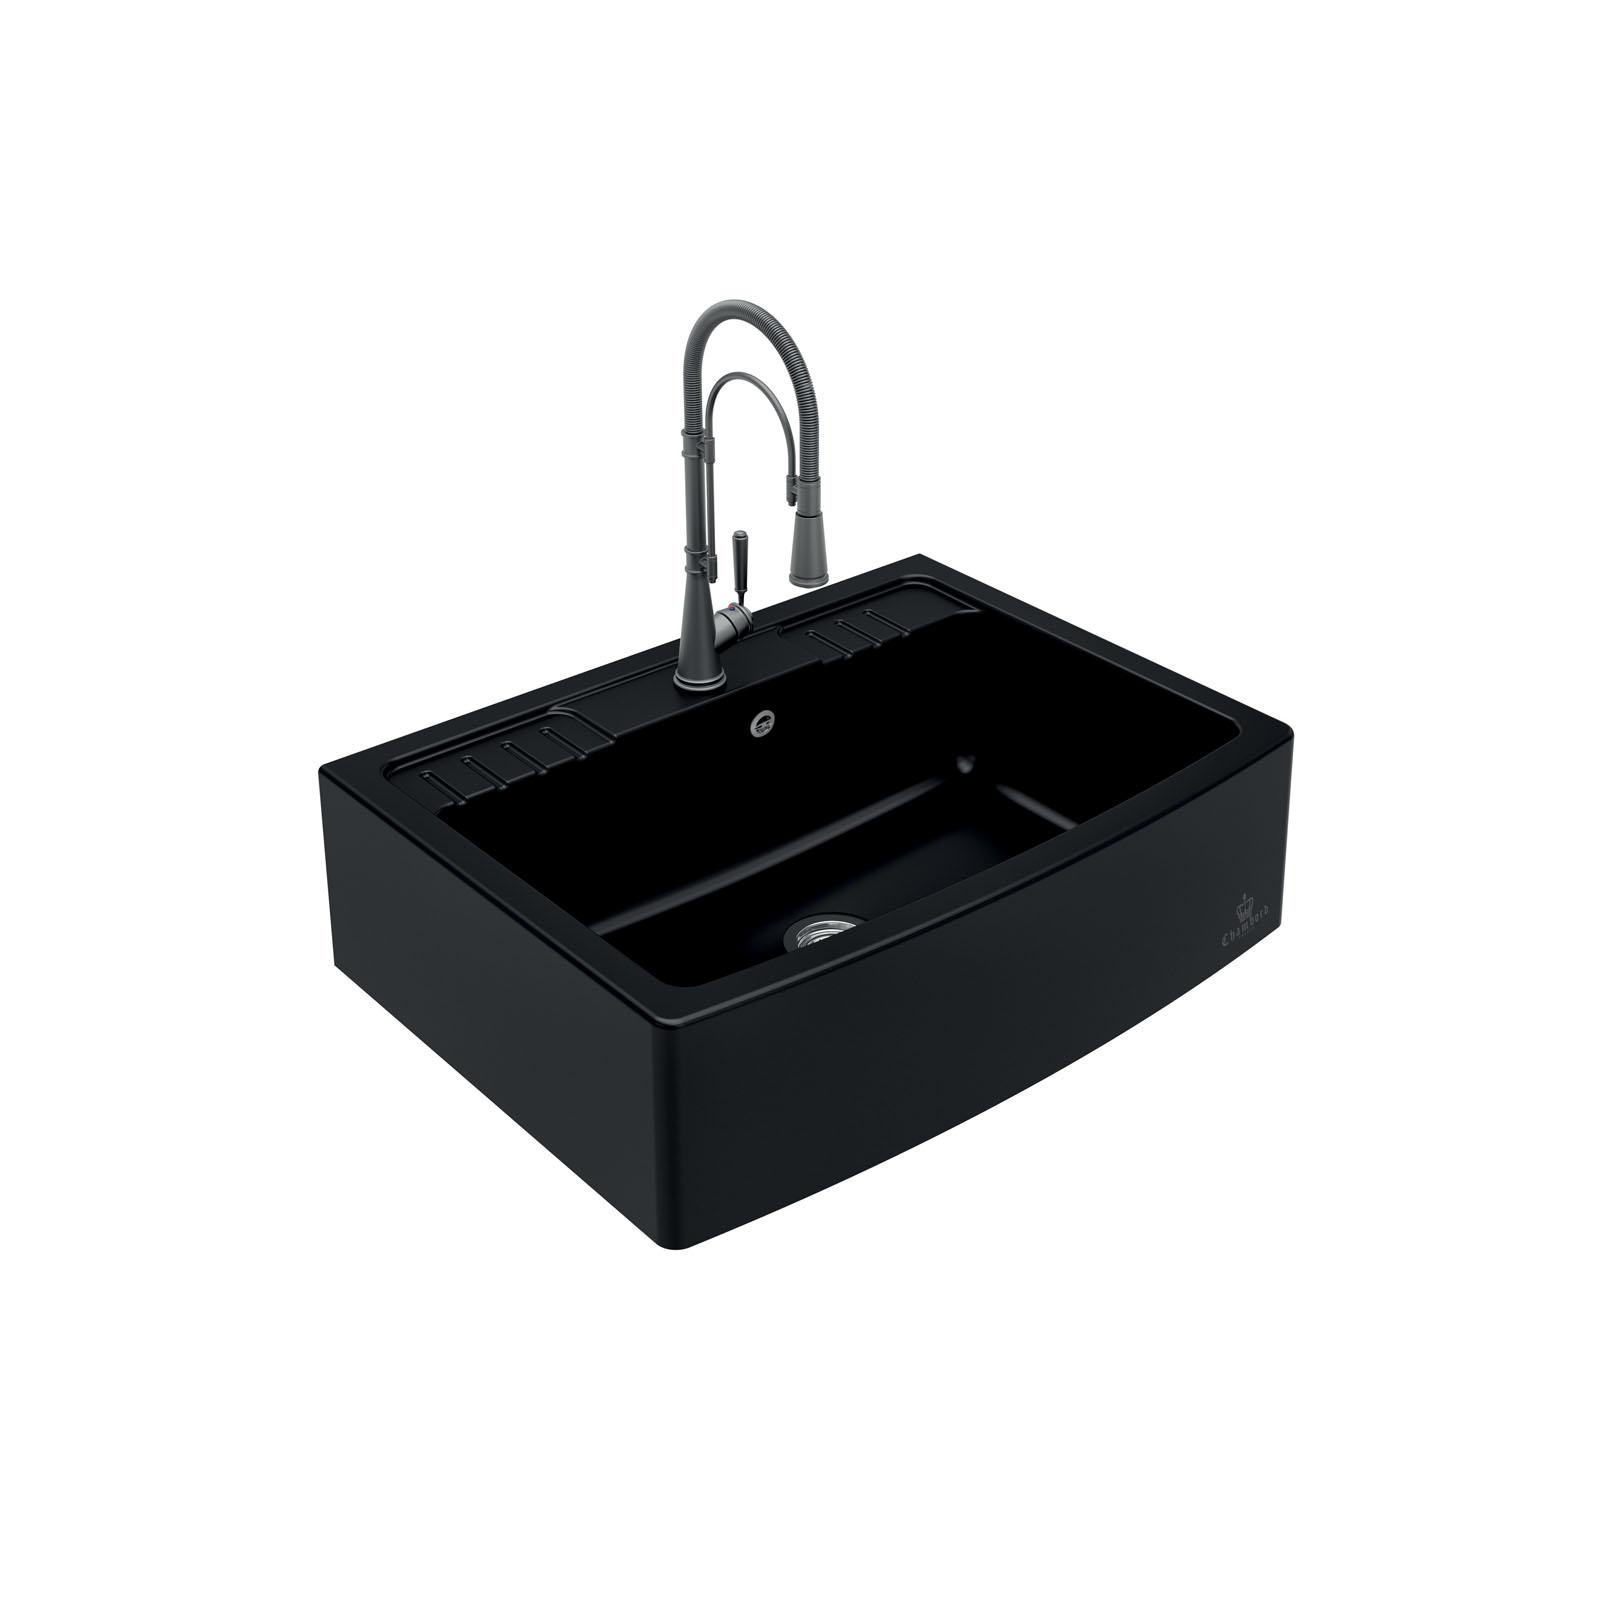 High-quality sink Clotaire IV granit black - one bowl